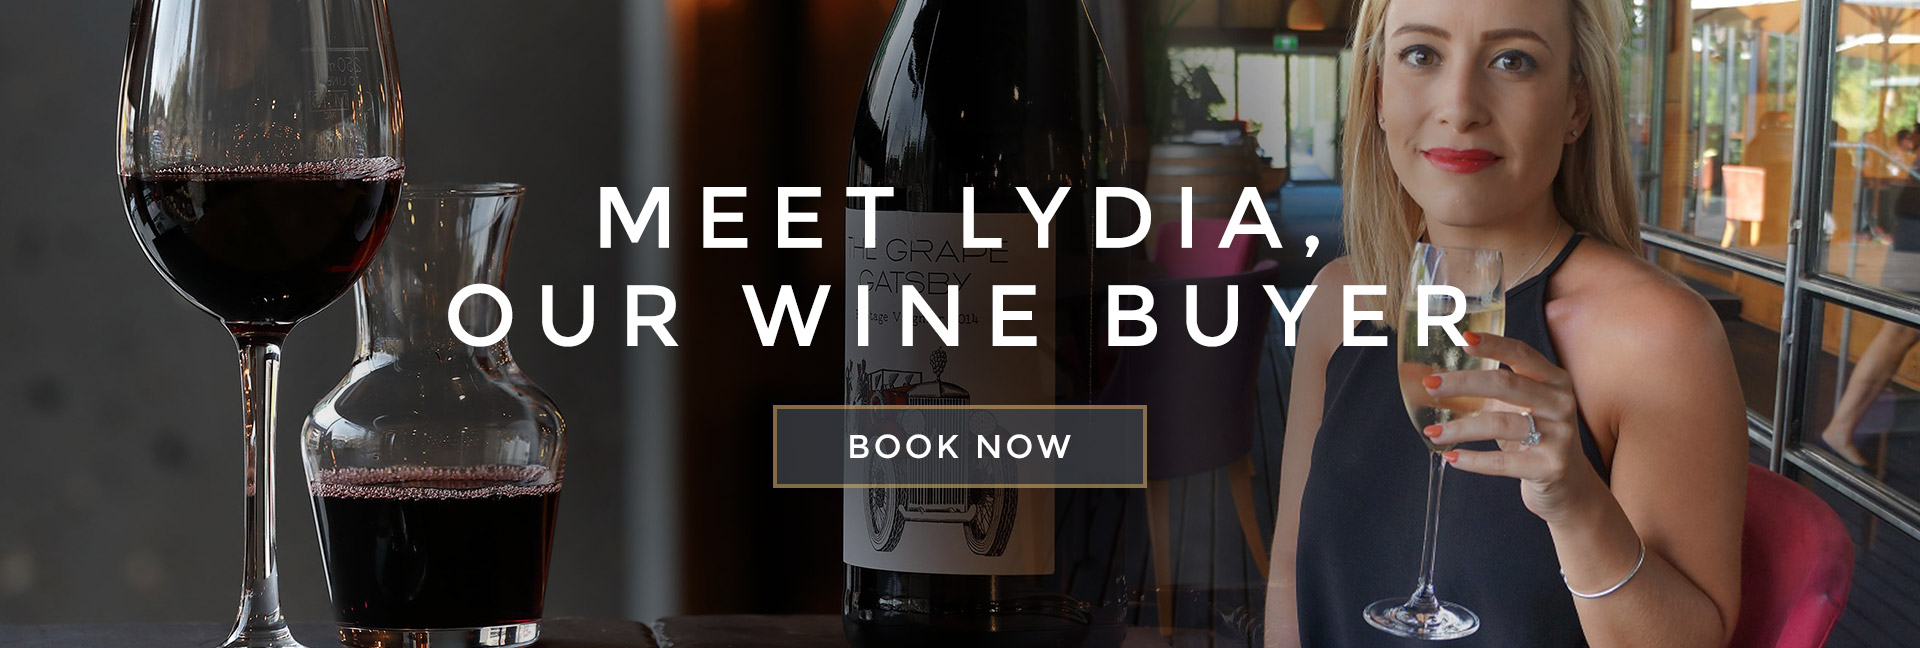 Meet Lydia, our wine buyer at All Bar One Byward Street